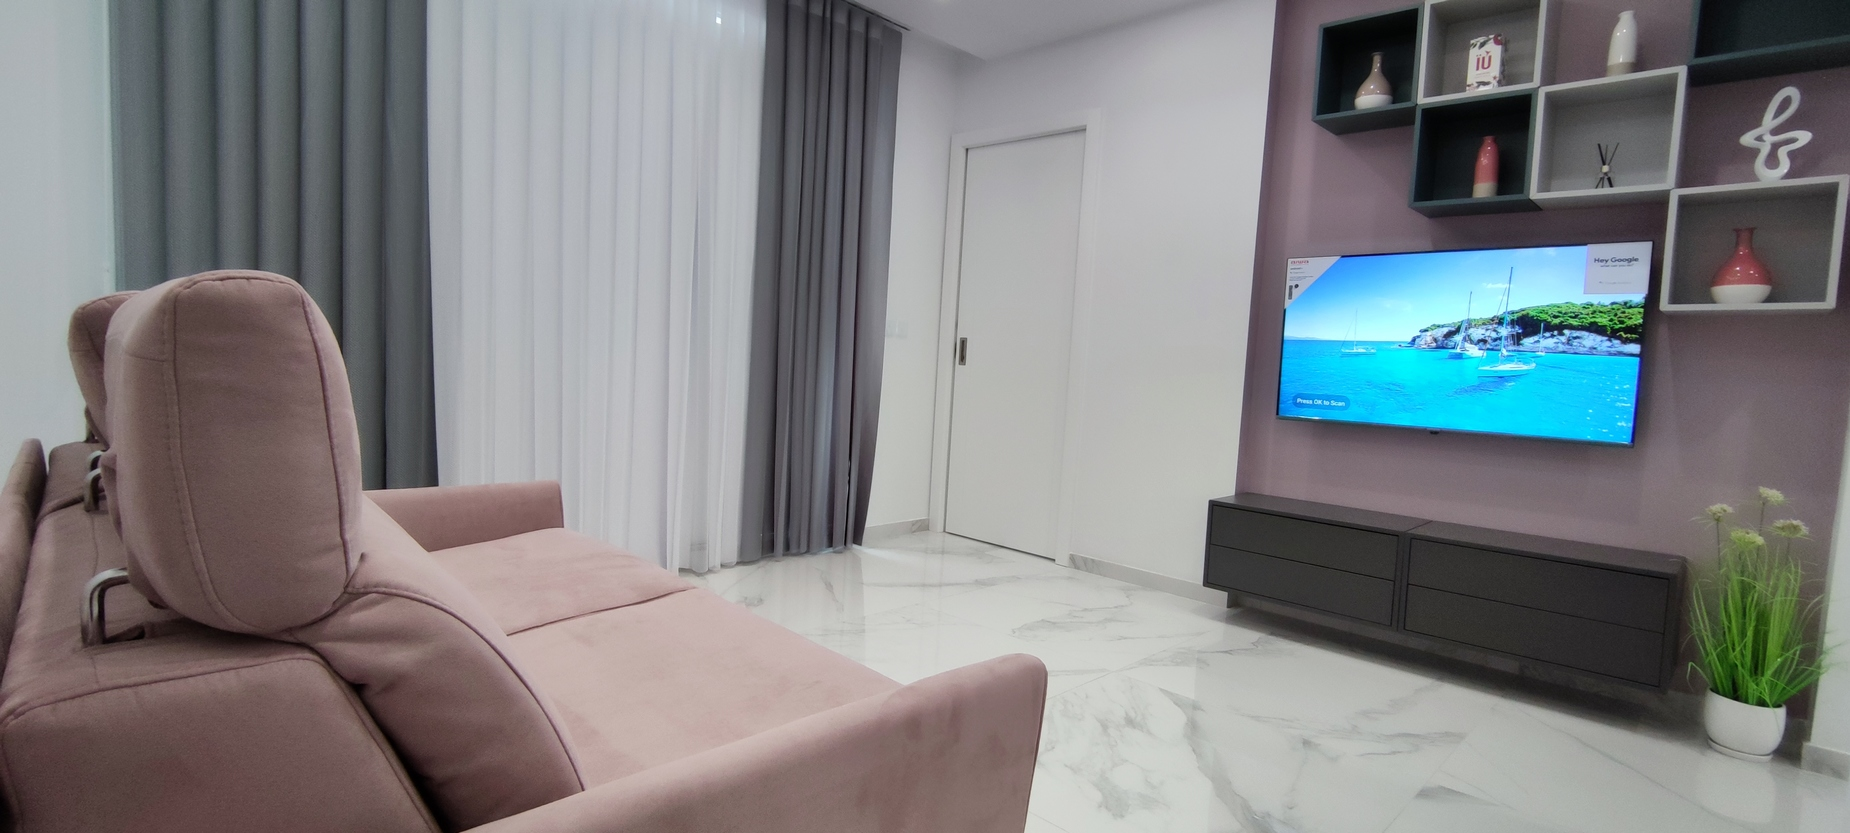 4 bed Penthouse For Rent in Sliema, Sliema - thumb 12